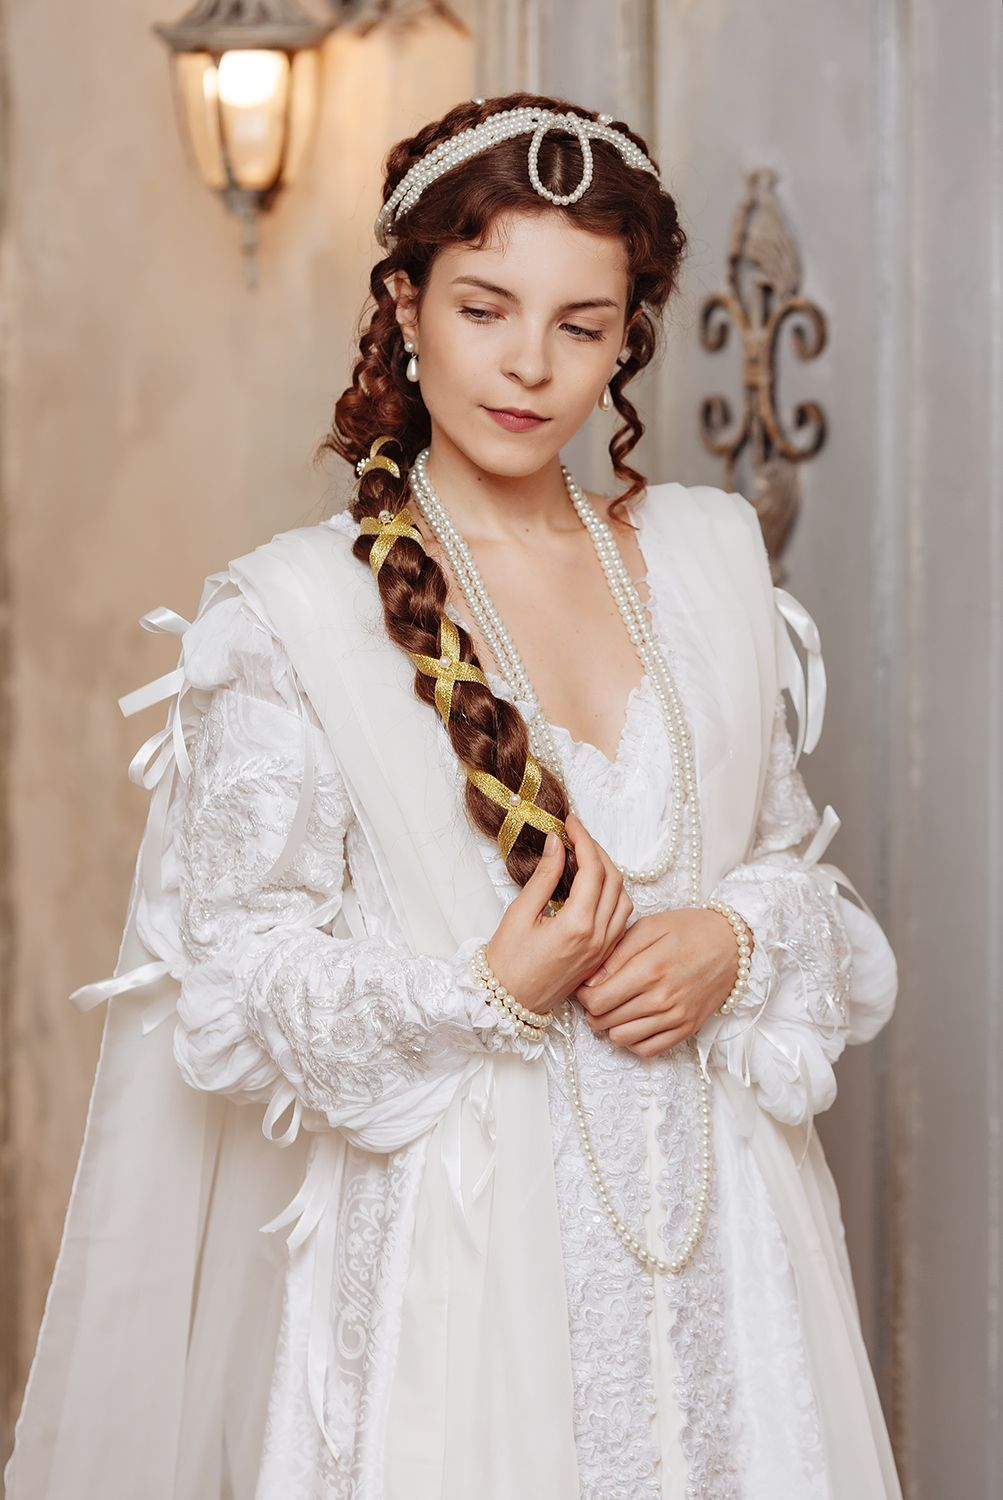 Renaissance white wedding dress, Ever After style woman